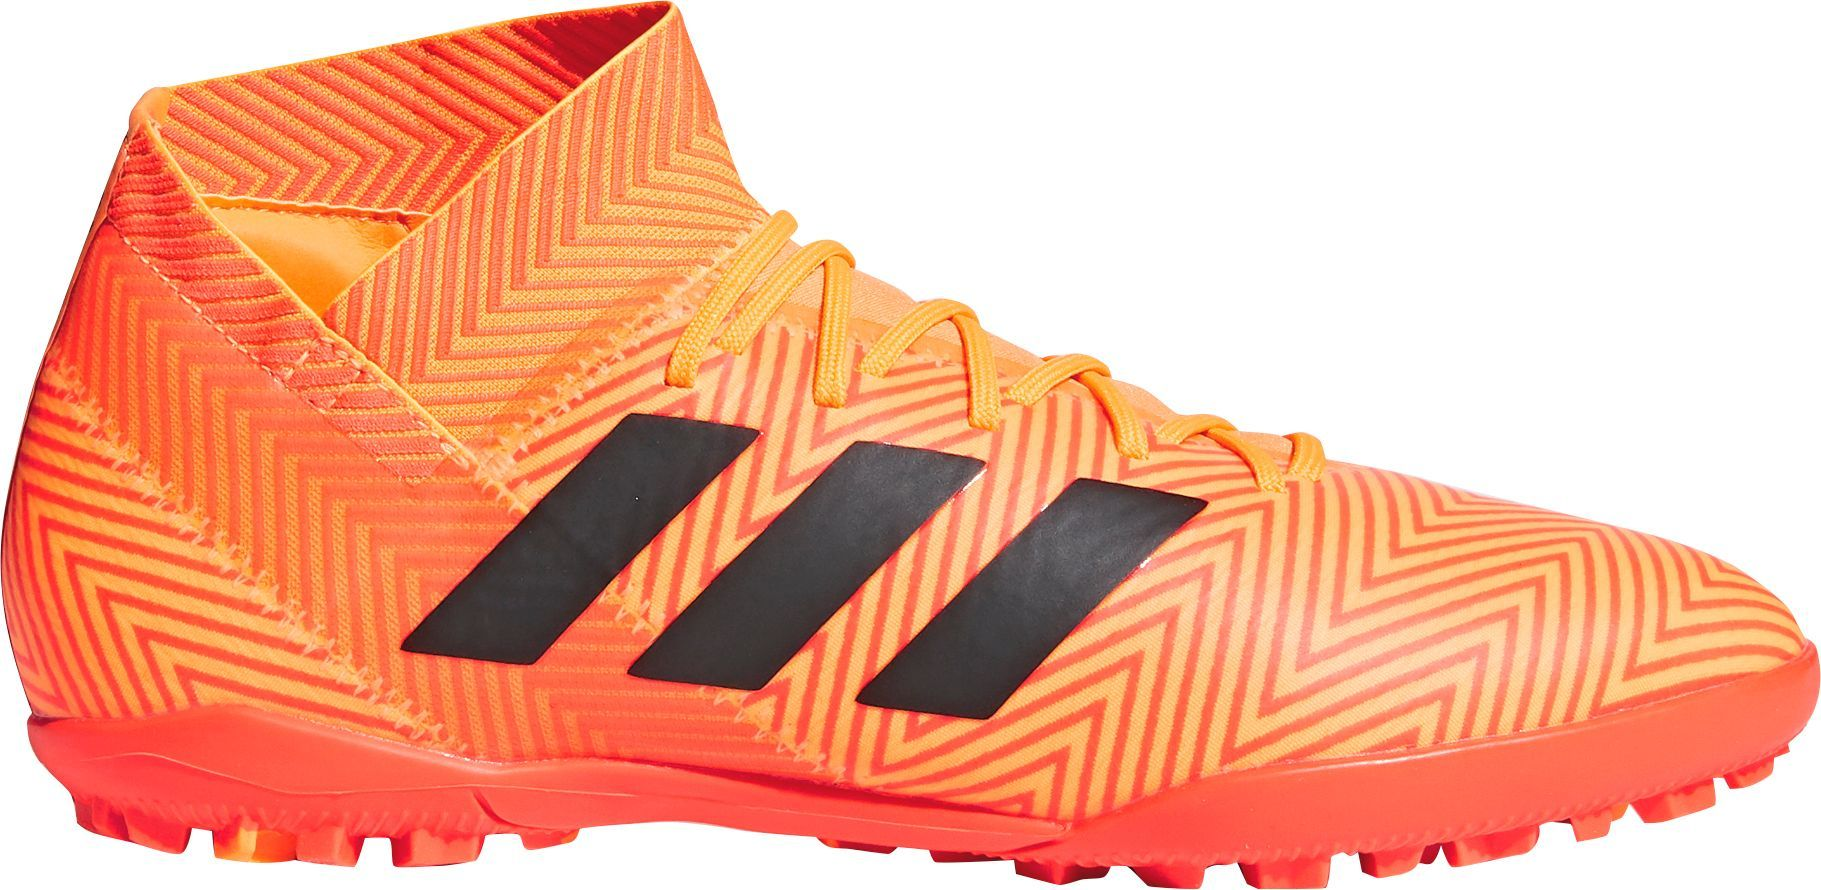 sports shoes 6f9f9 aeac1 adidas Mens Nemeziz Tango 18.3 Turf Soccer Cleats, Size 13.0, Orange